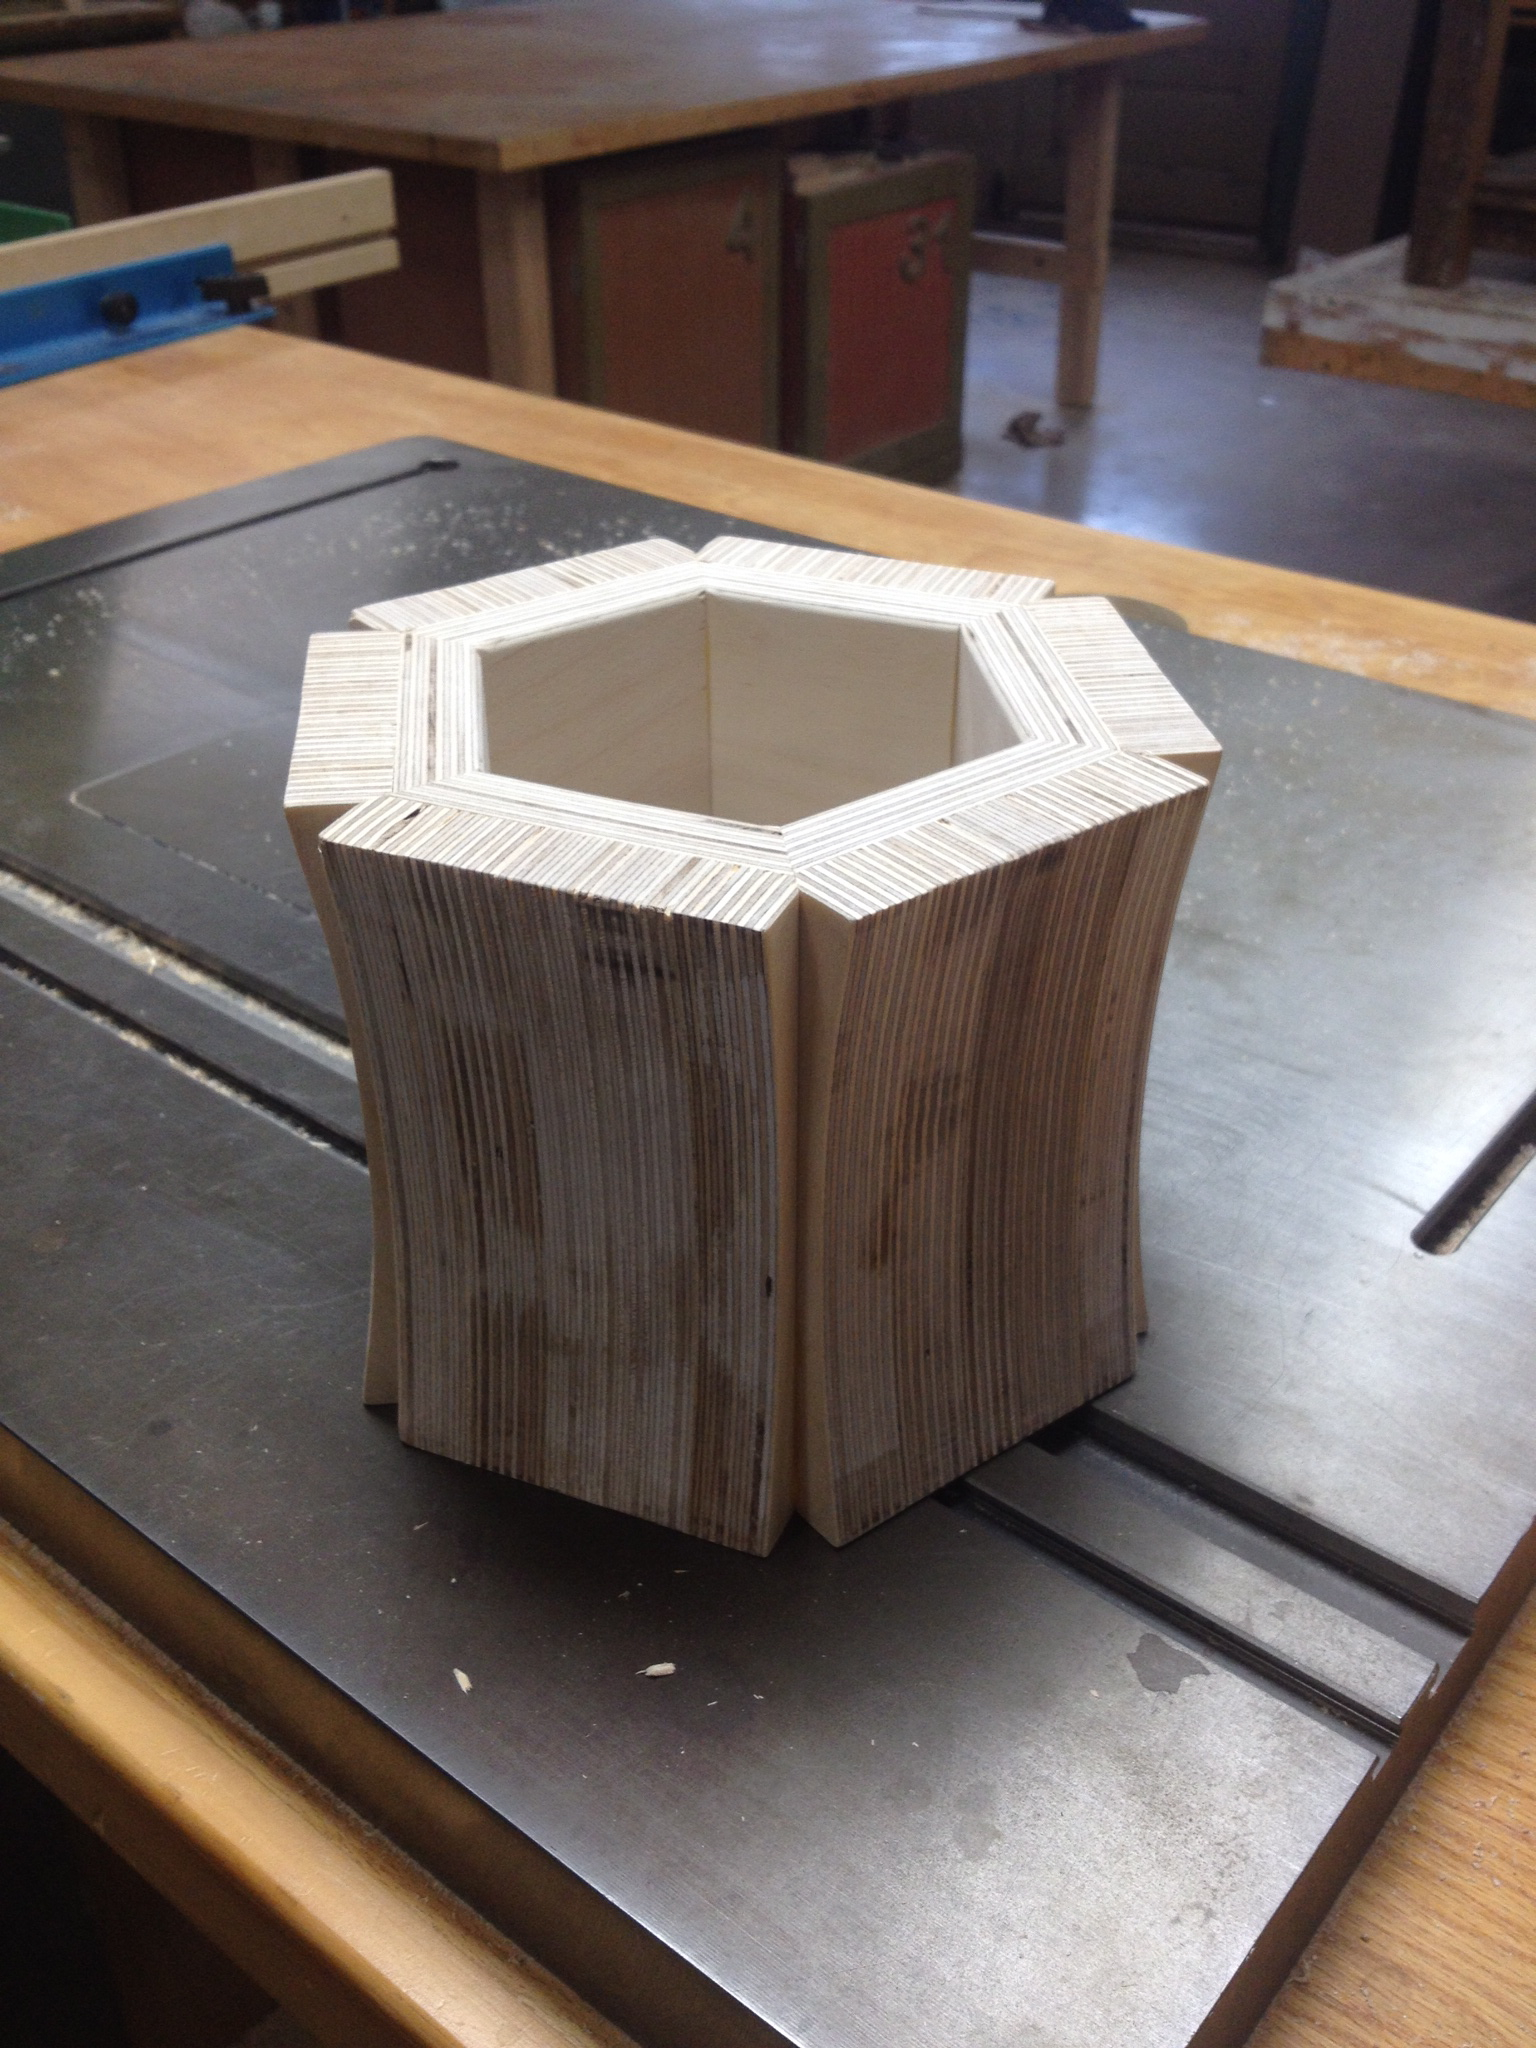 the heart of the table base